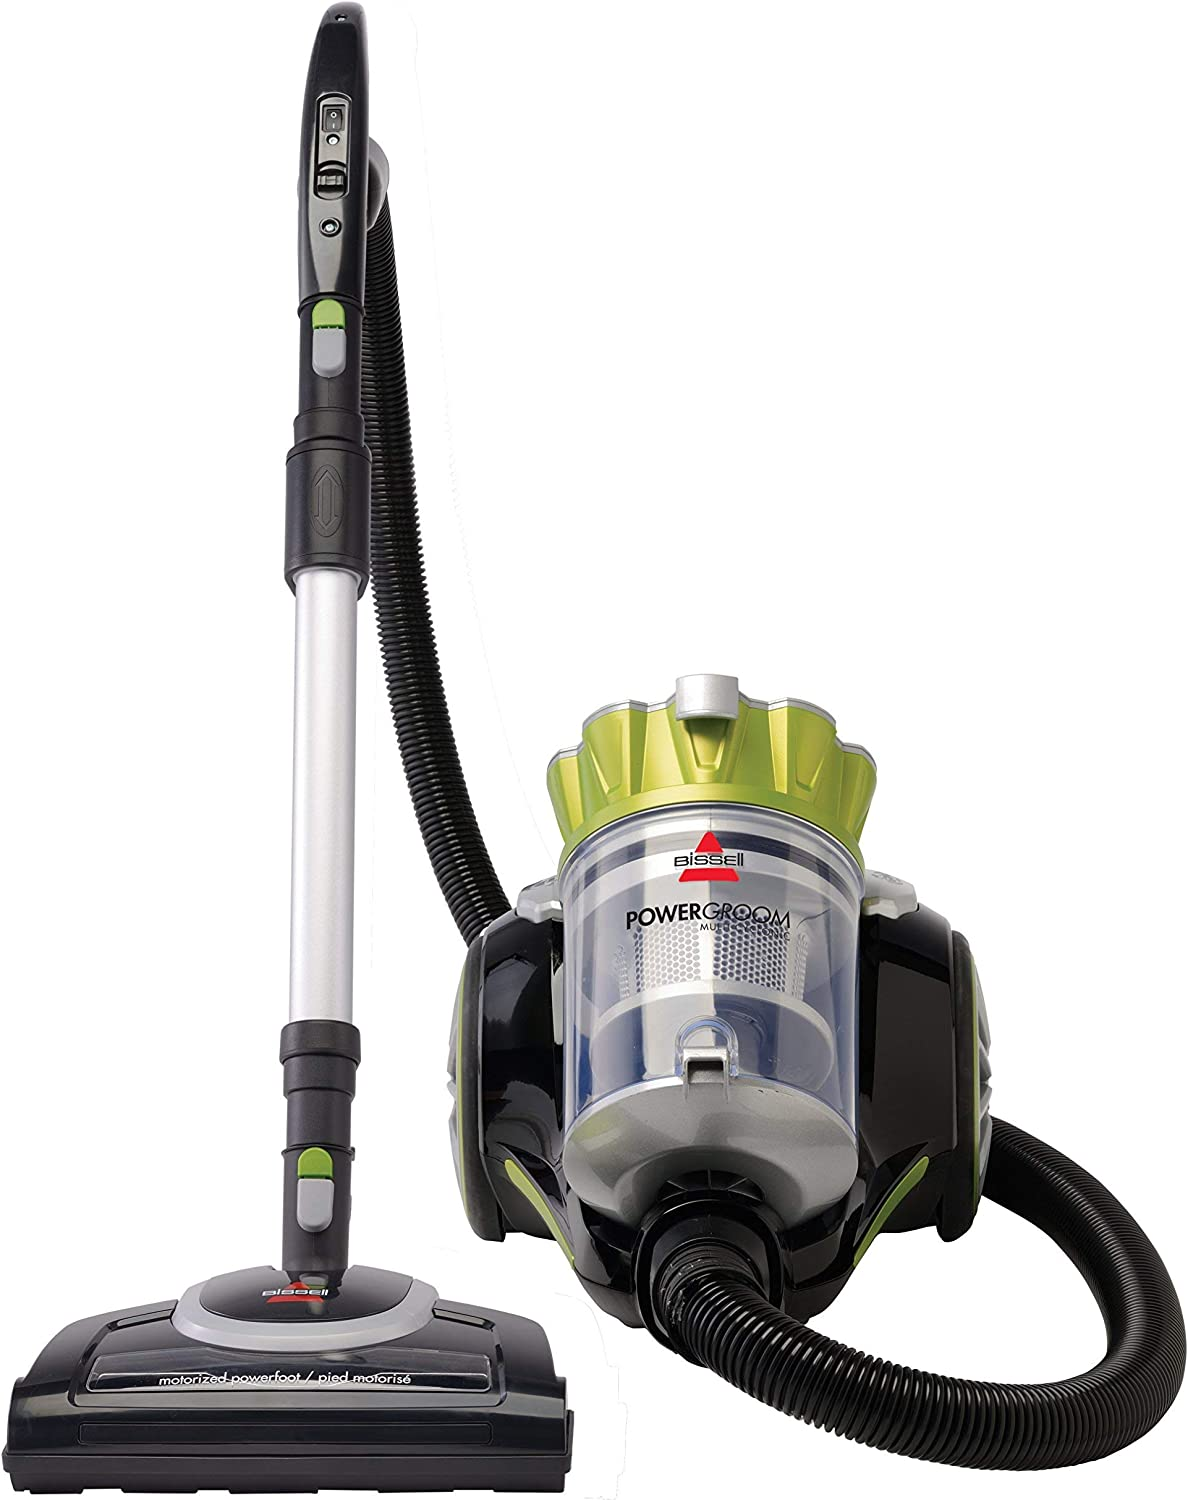 Bissell Powergroom Multicyclonic Bagless Canister Vacuum - Corded (Renewed)